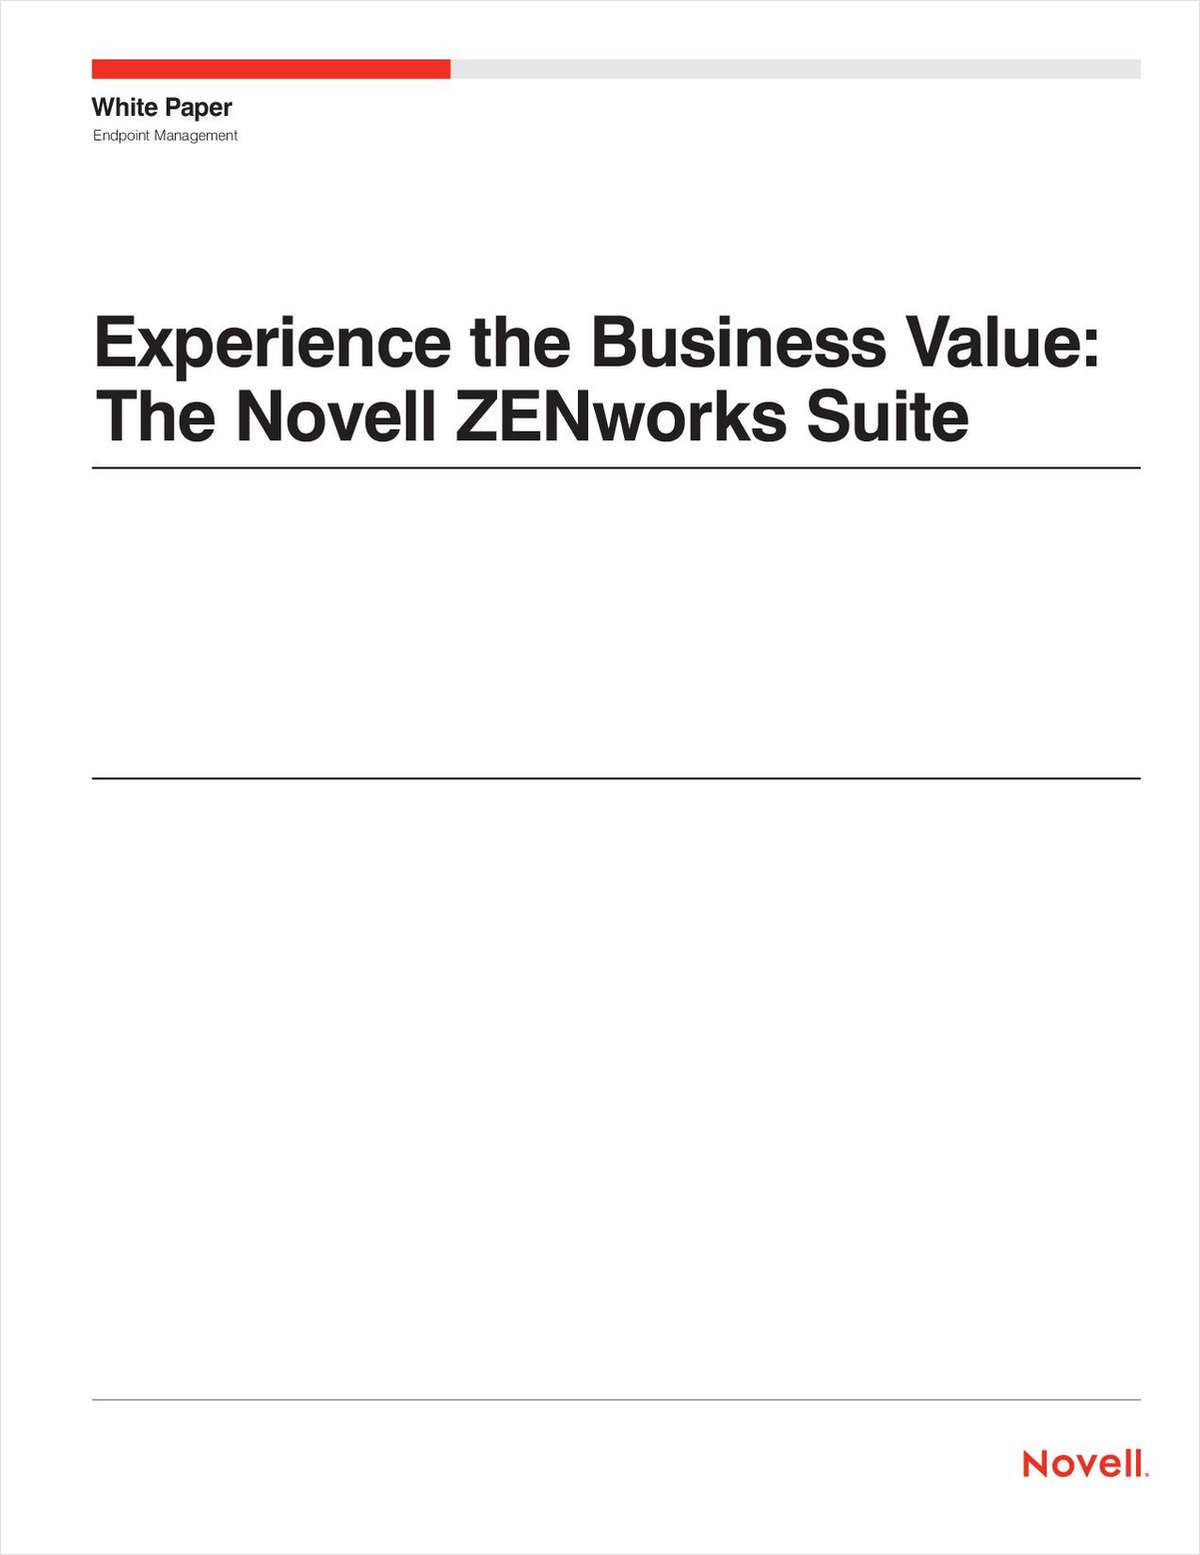 Experience the Business Value: The Novell ZENworks Endpoint Management Suite